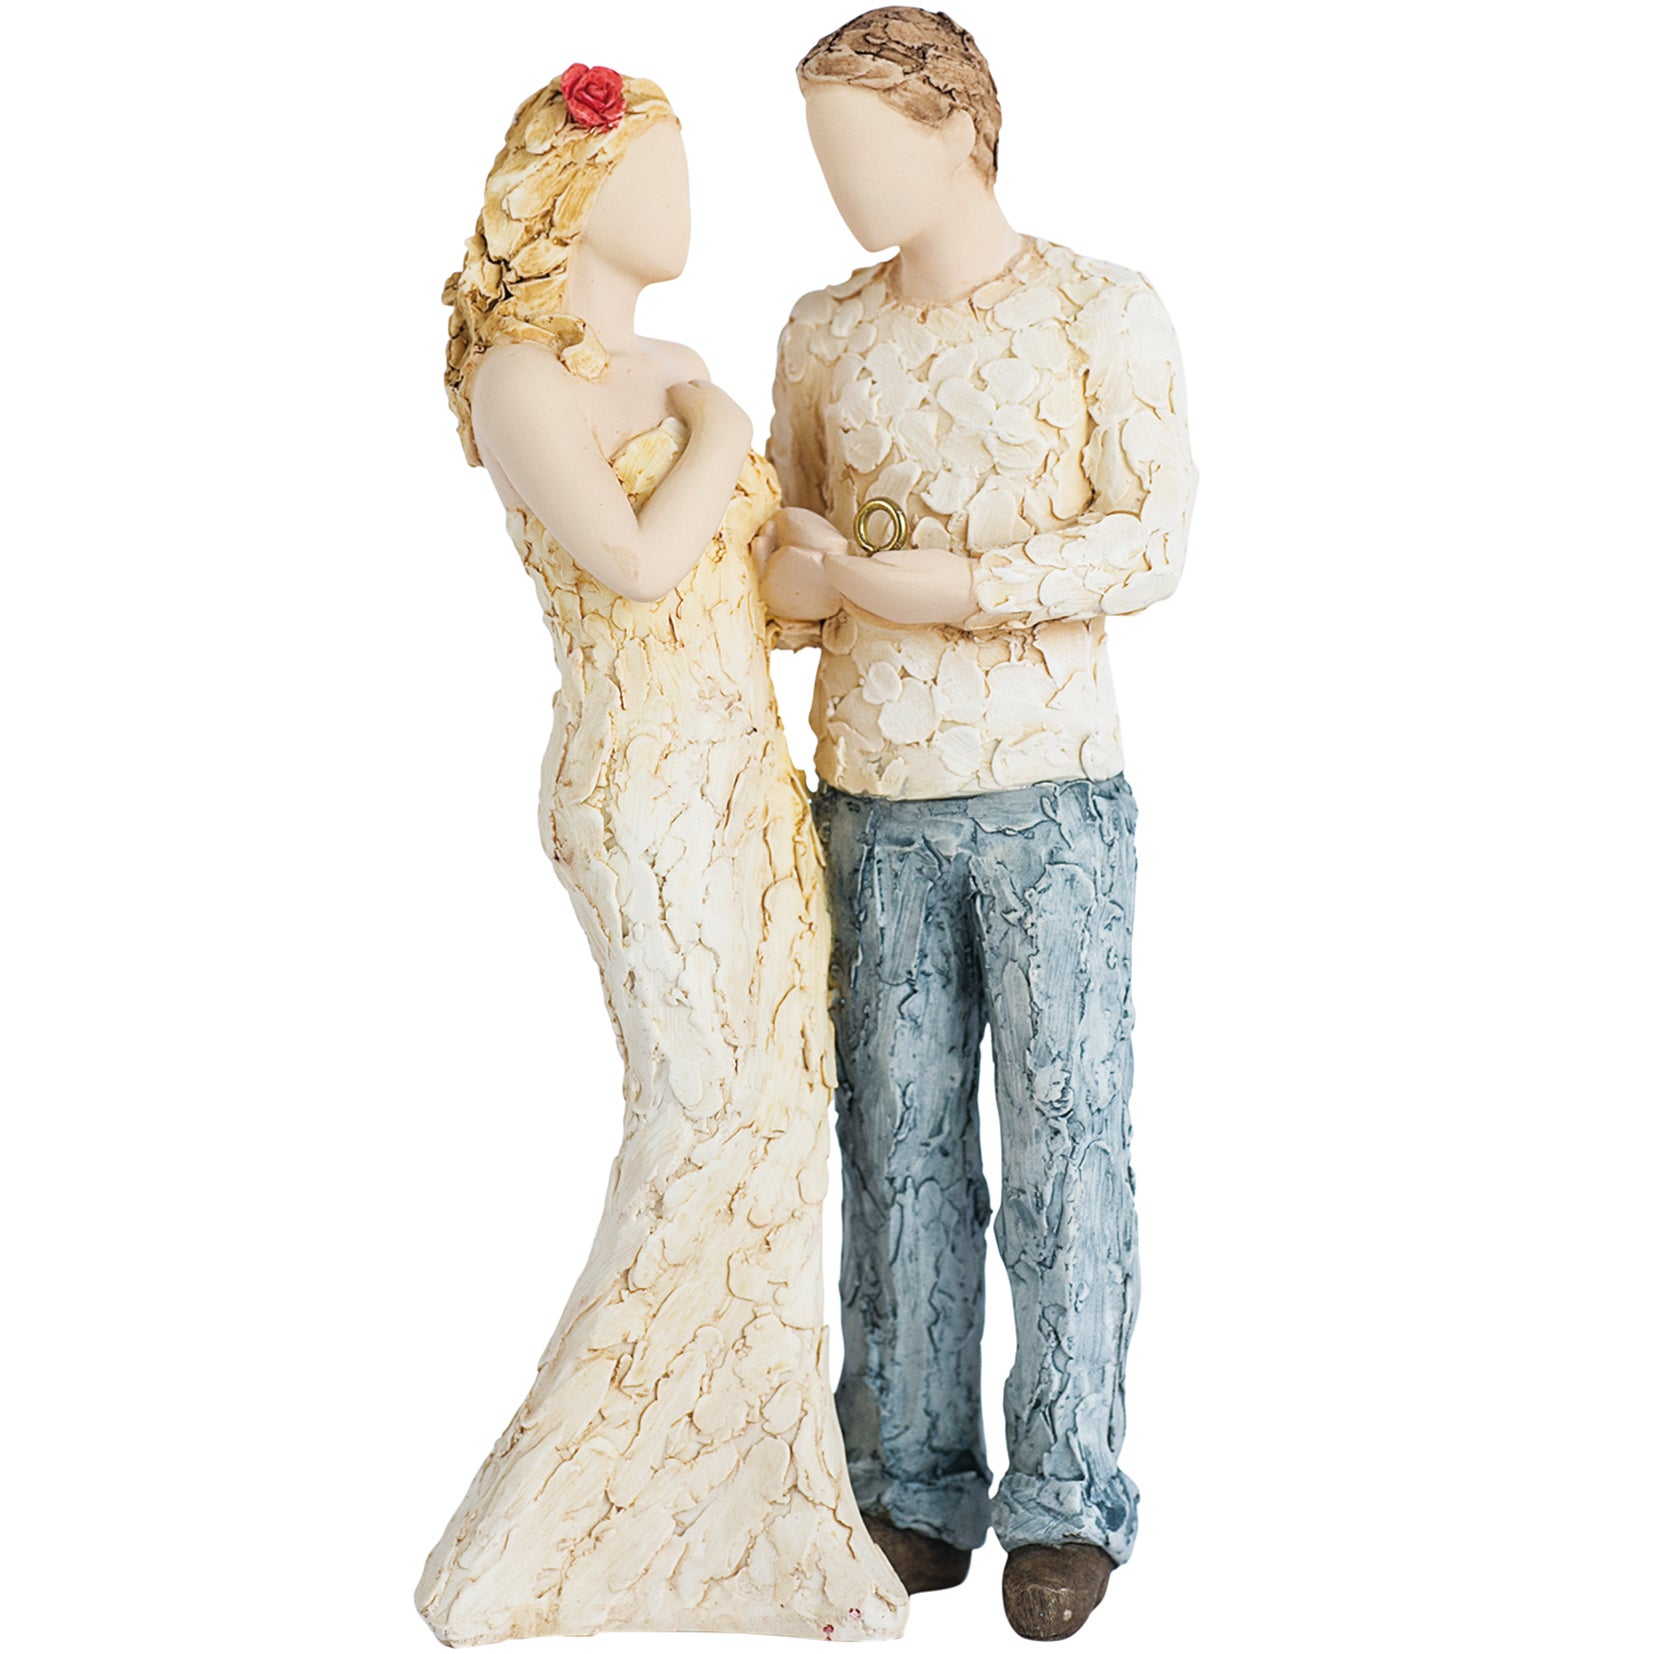 More than Words Figurines The One